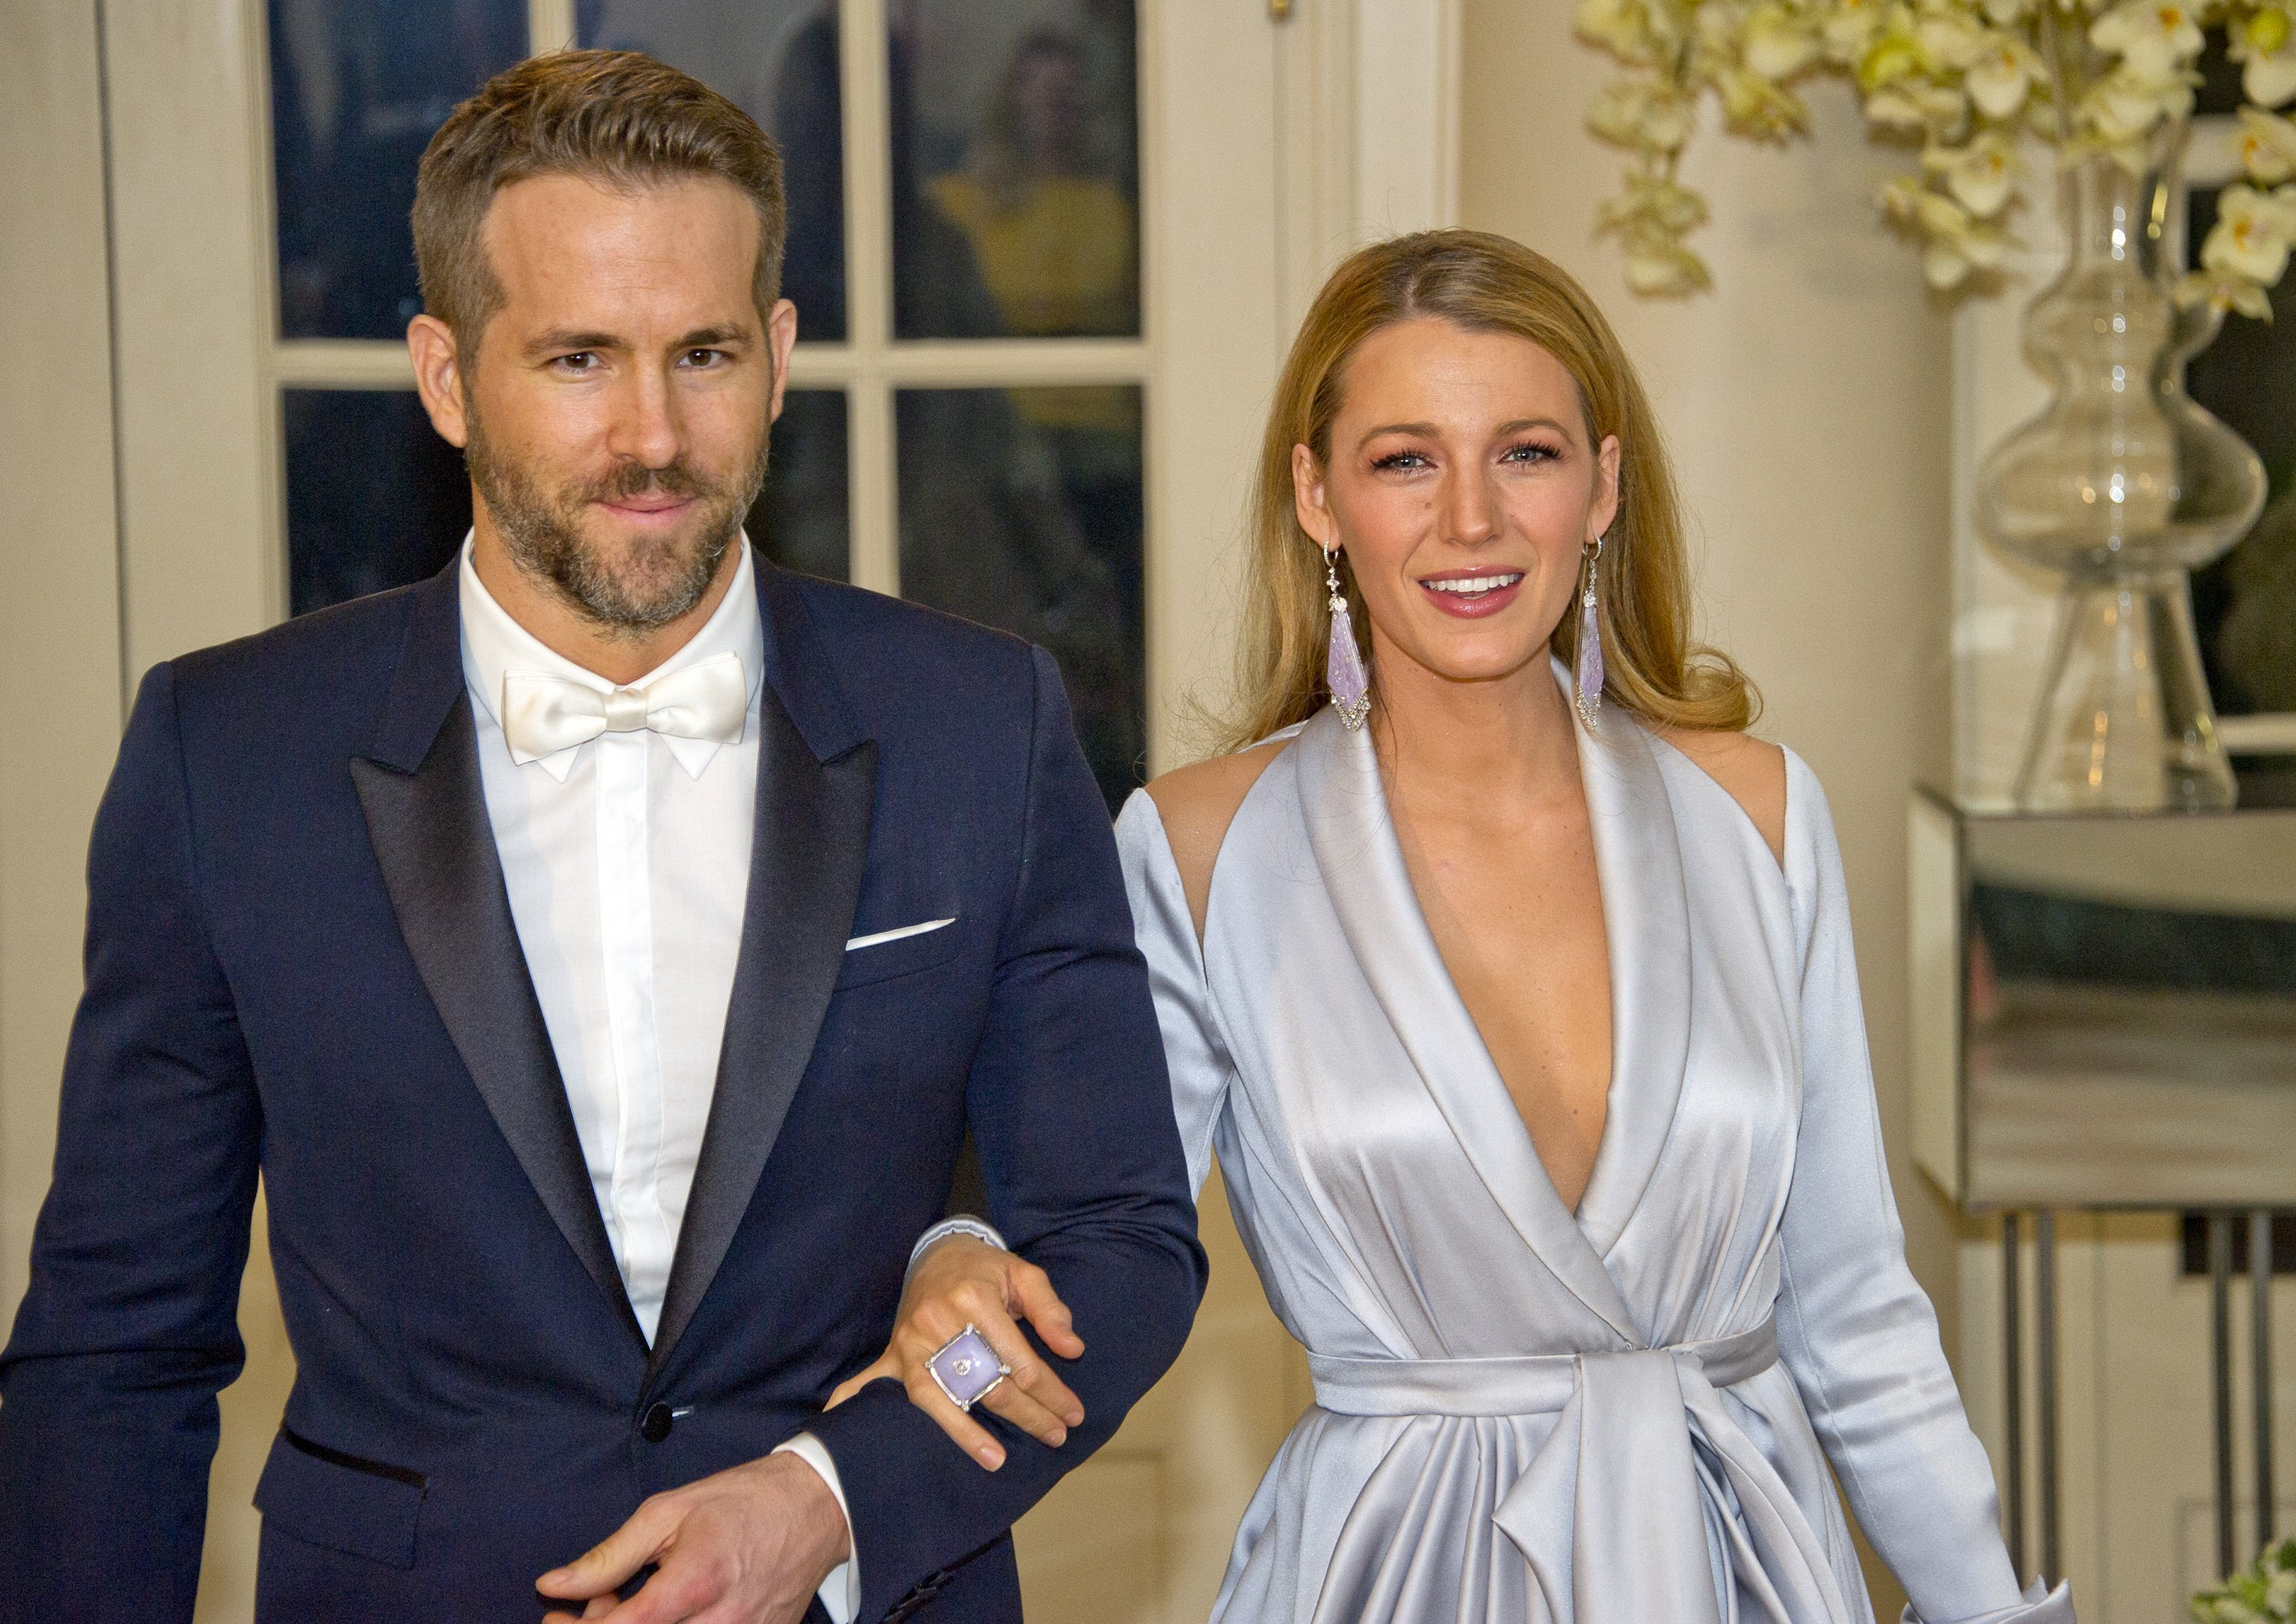 Ryan Reynolds and Blake Lively arrive for the State Dinner in honor of Prime Minister Trudeau and Mrs. Sophie Trudeau of Canada at the White House March 10, 2016. | Photo: GettyImages